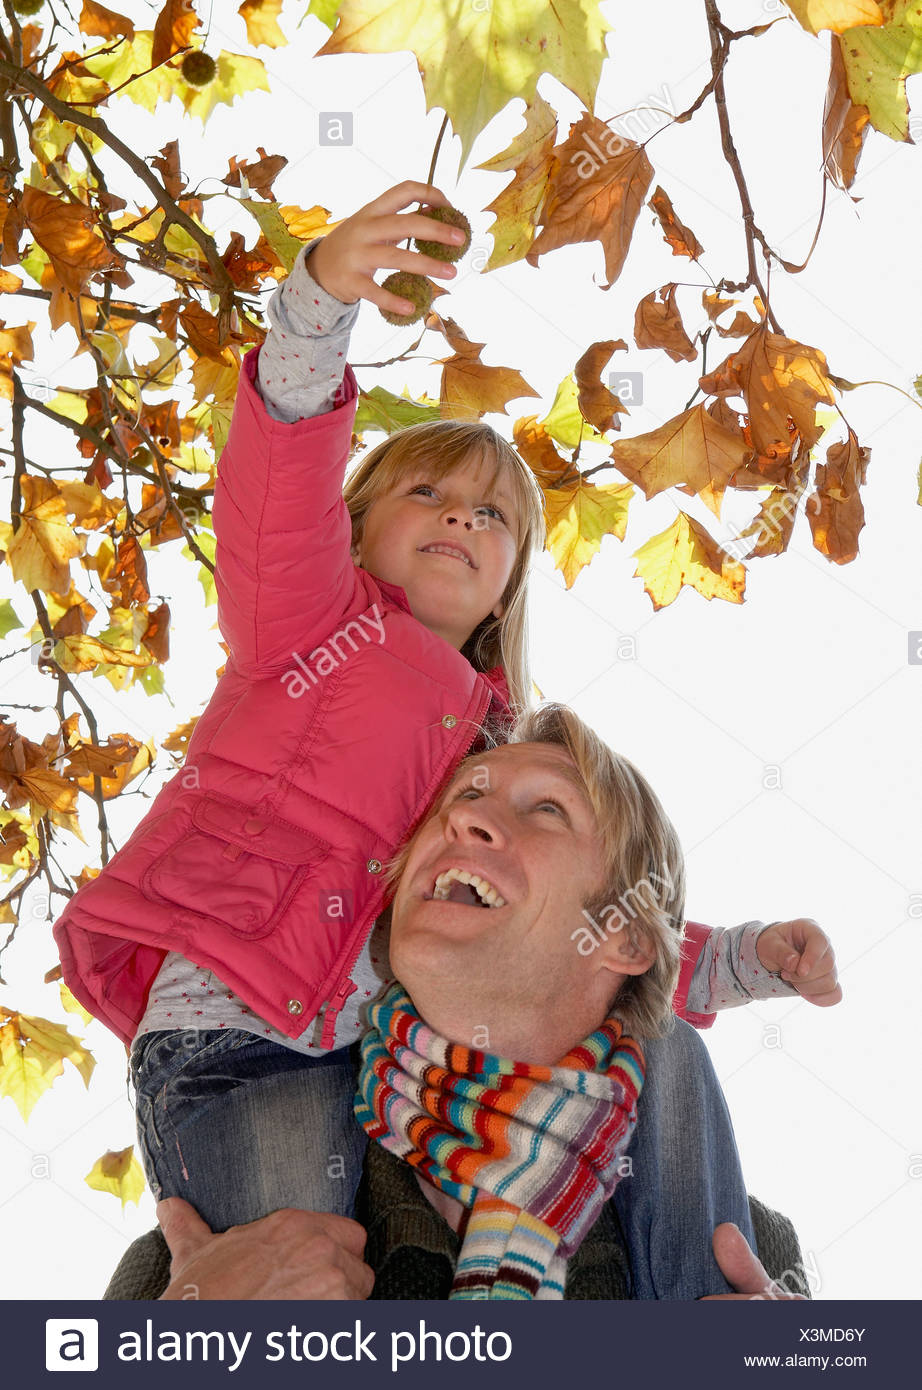 Man holding up young girl to pick something off a tree - Stock Image